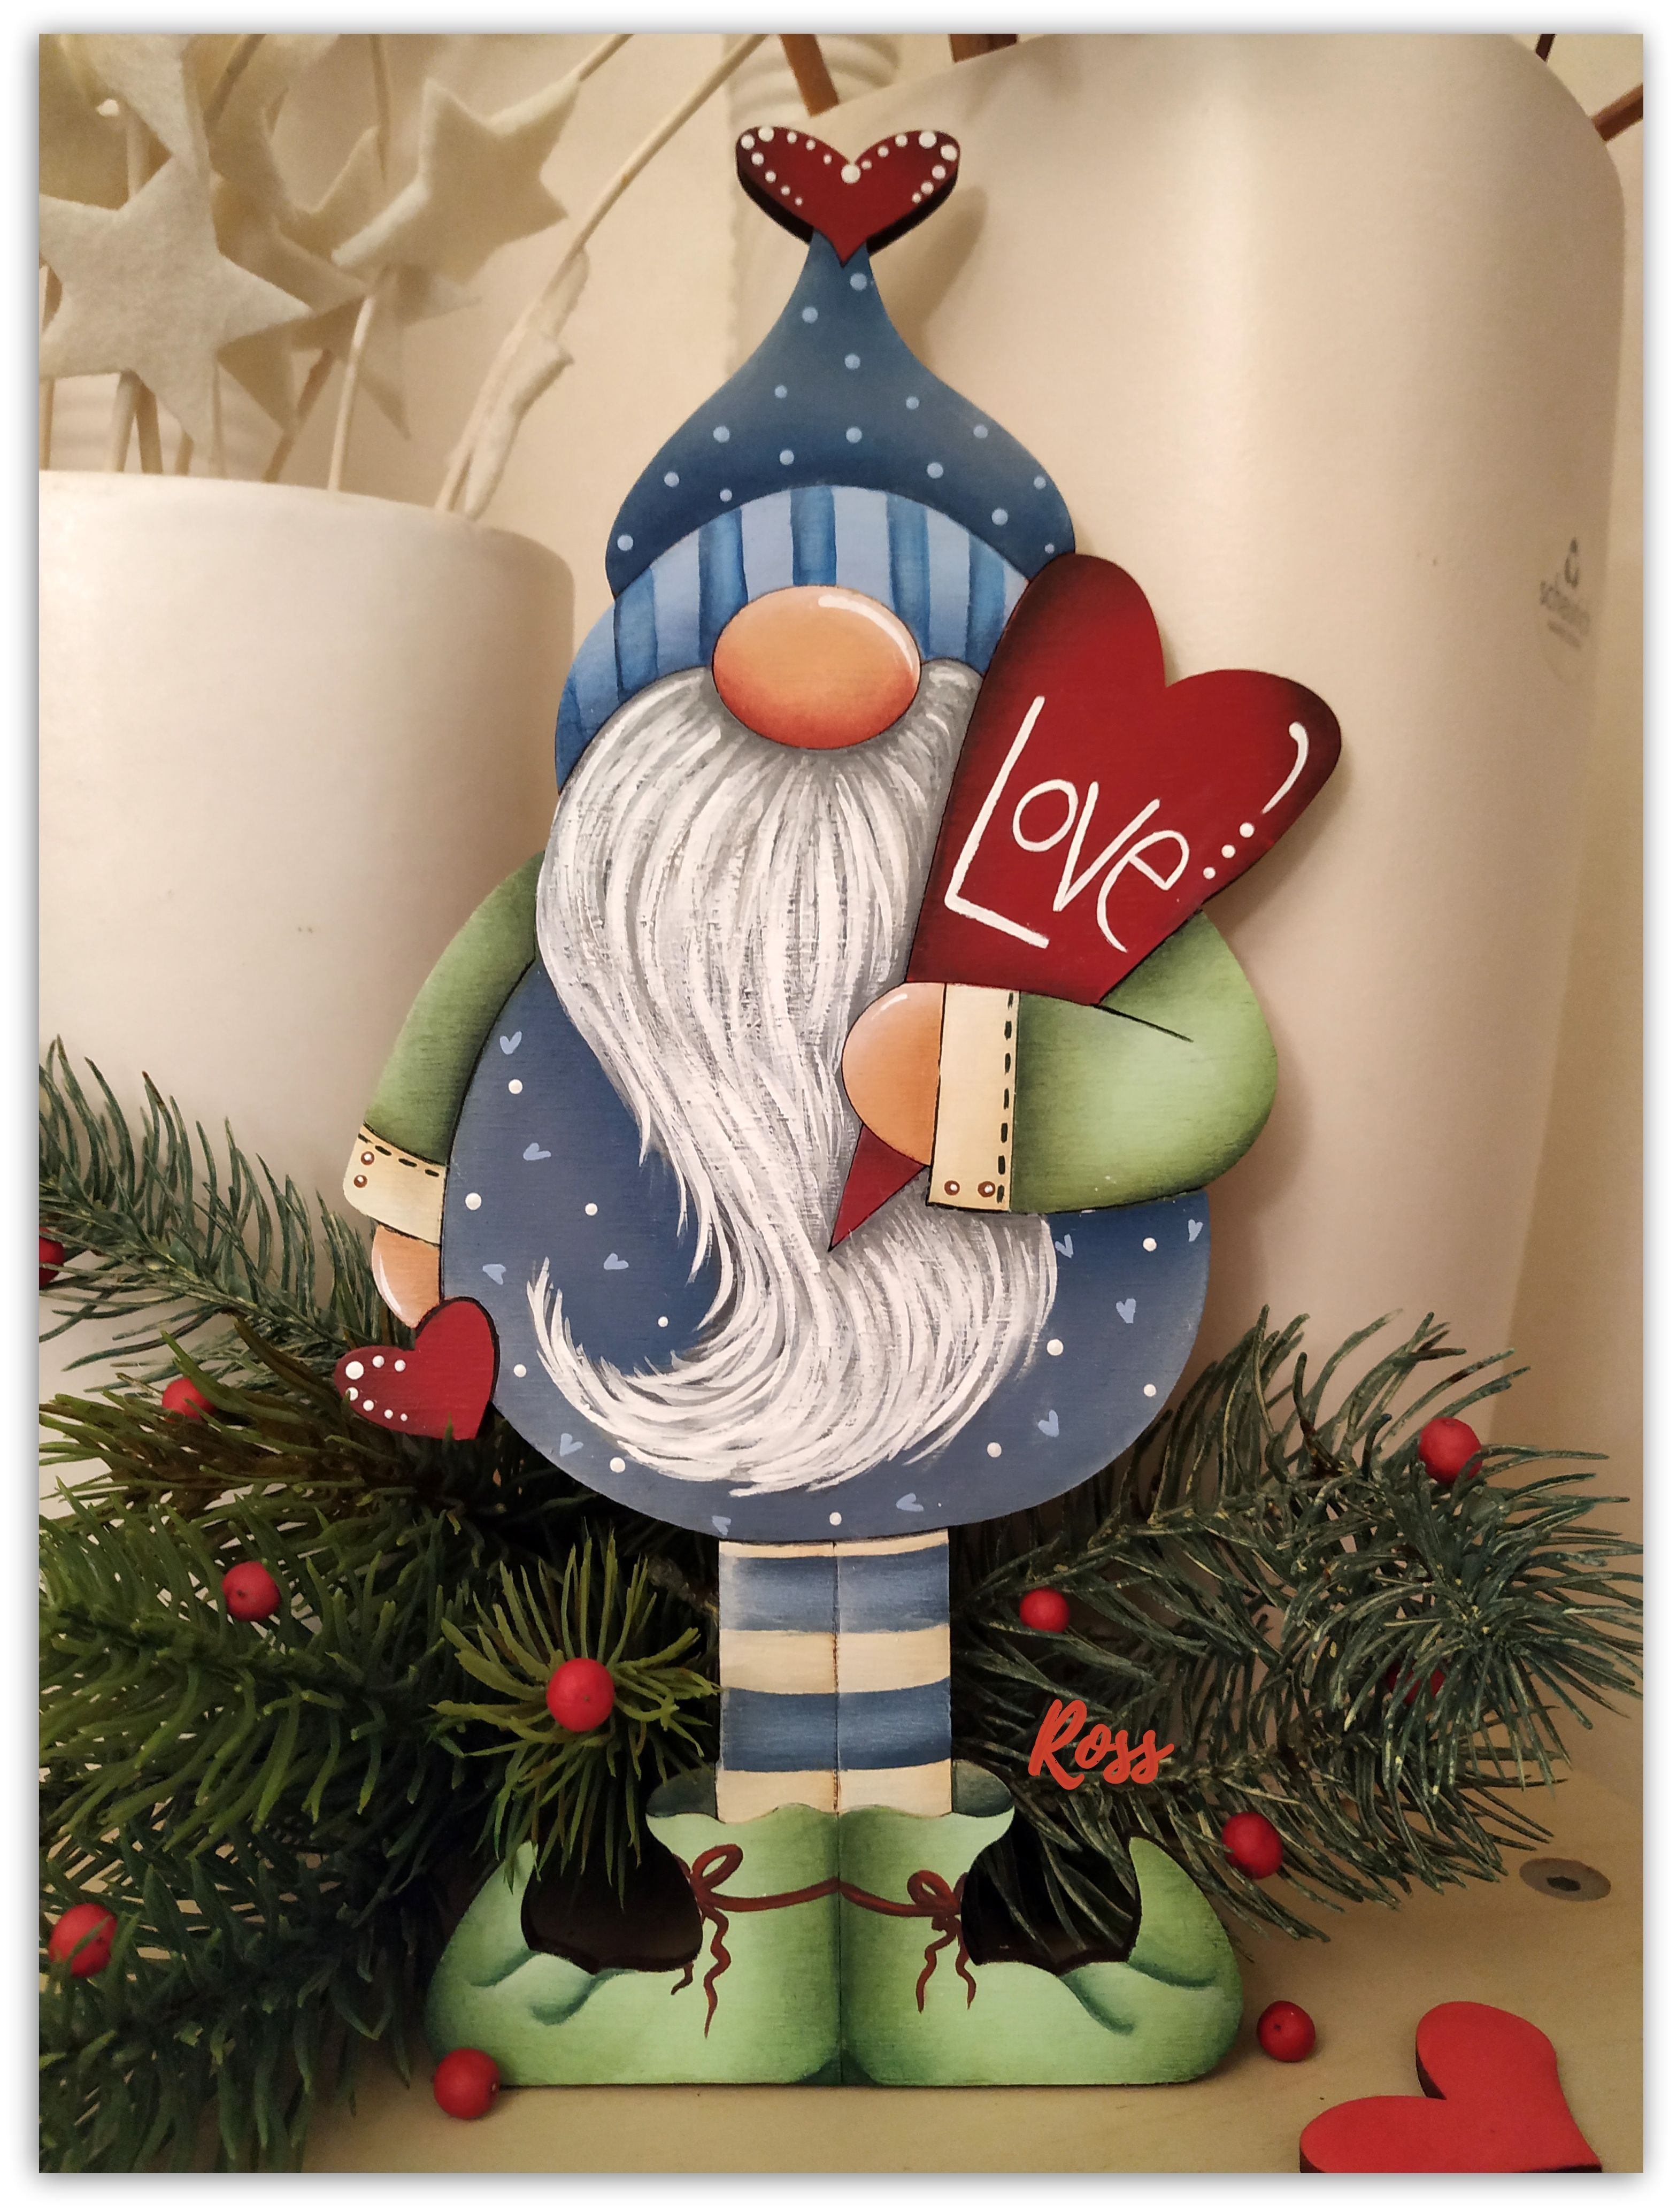 Is Ross Open On Christmas 2020 Gnome_Kind_of_Love design Reneè Mullins painted by Ross in 2020